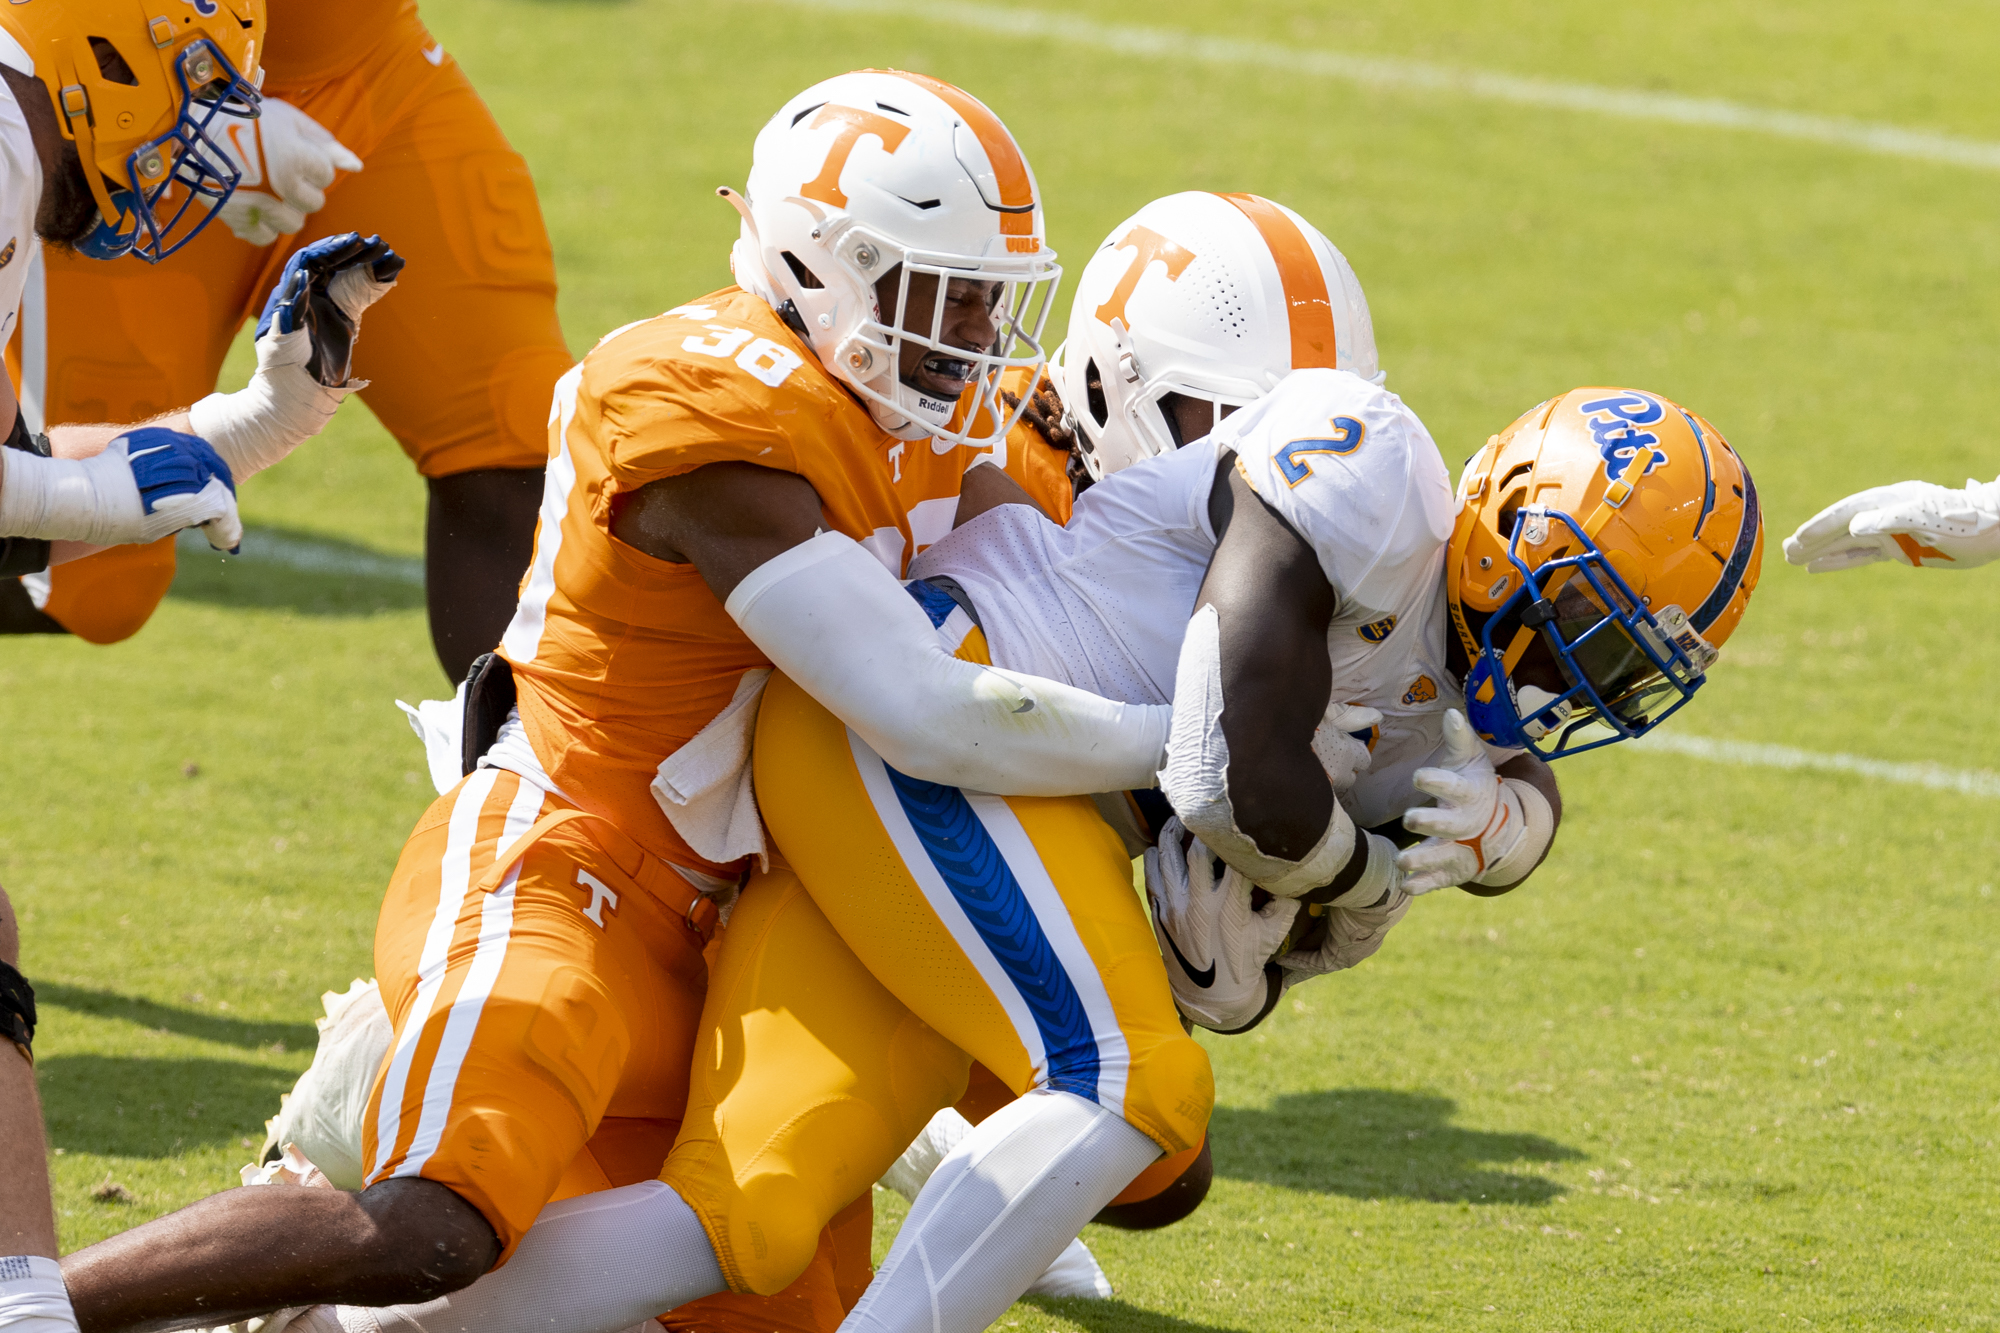 KNOXVILLE, TN - 2021.09.11 - Tennessee vs. Pittsburgh